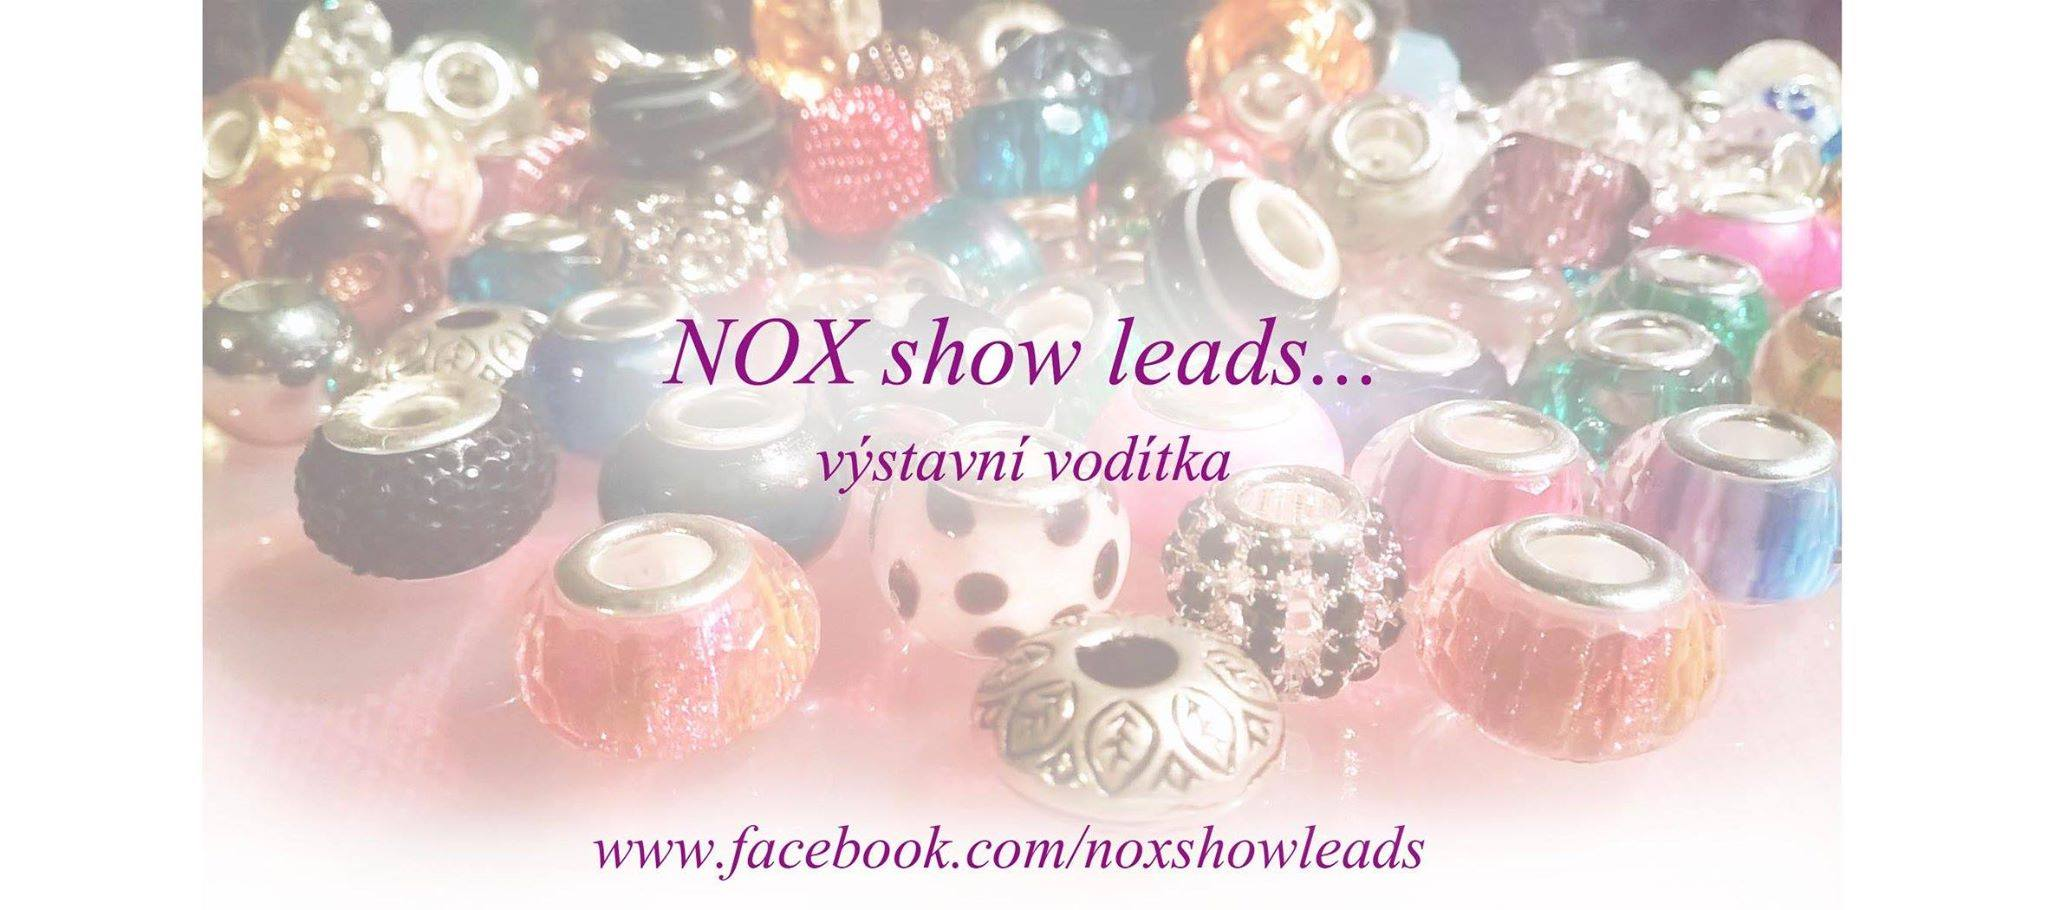 NOX show leads